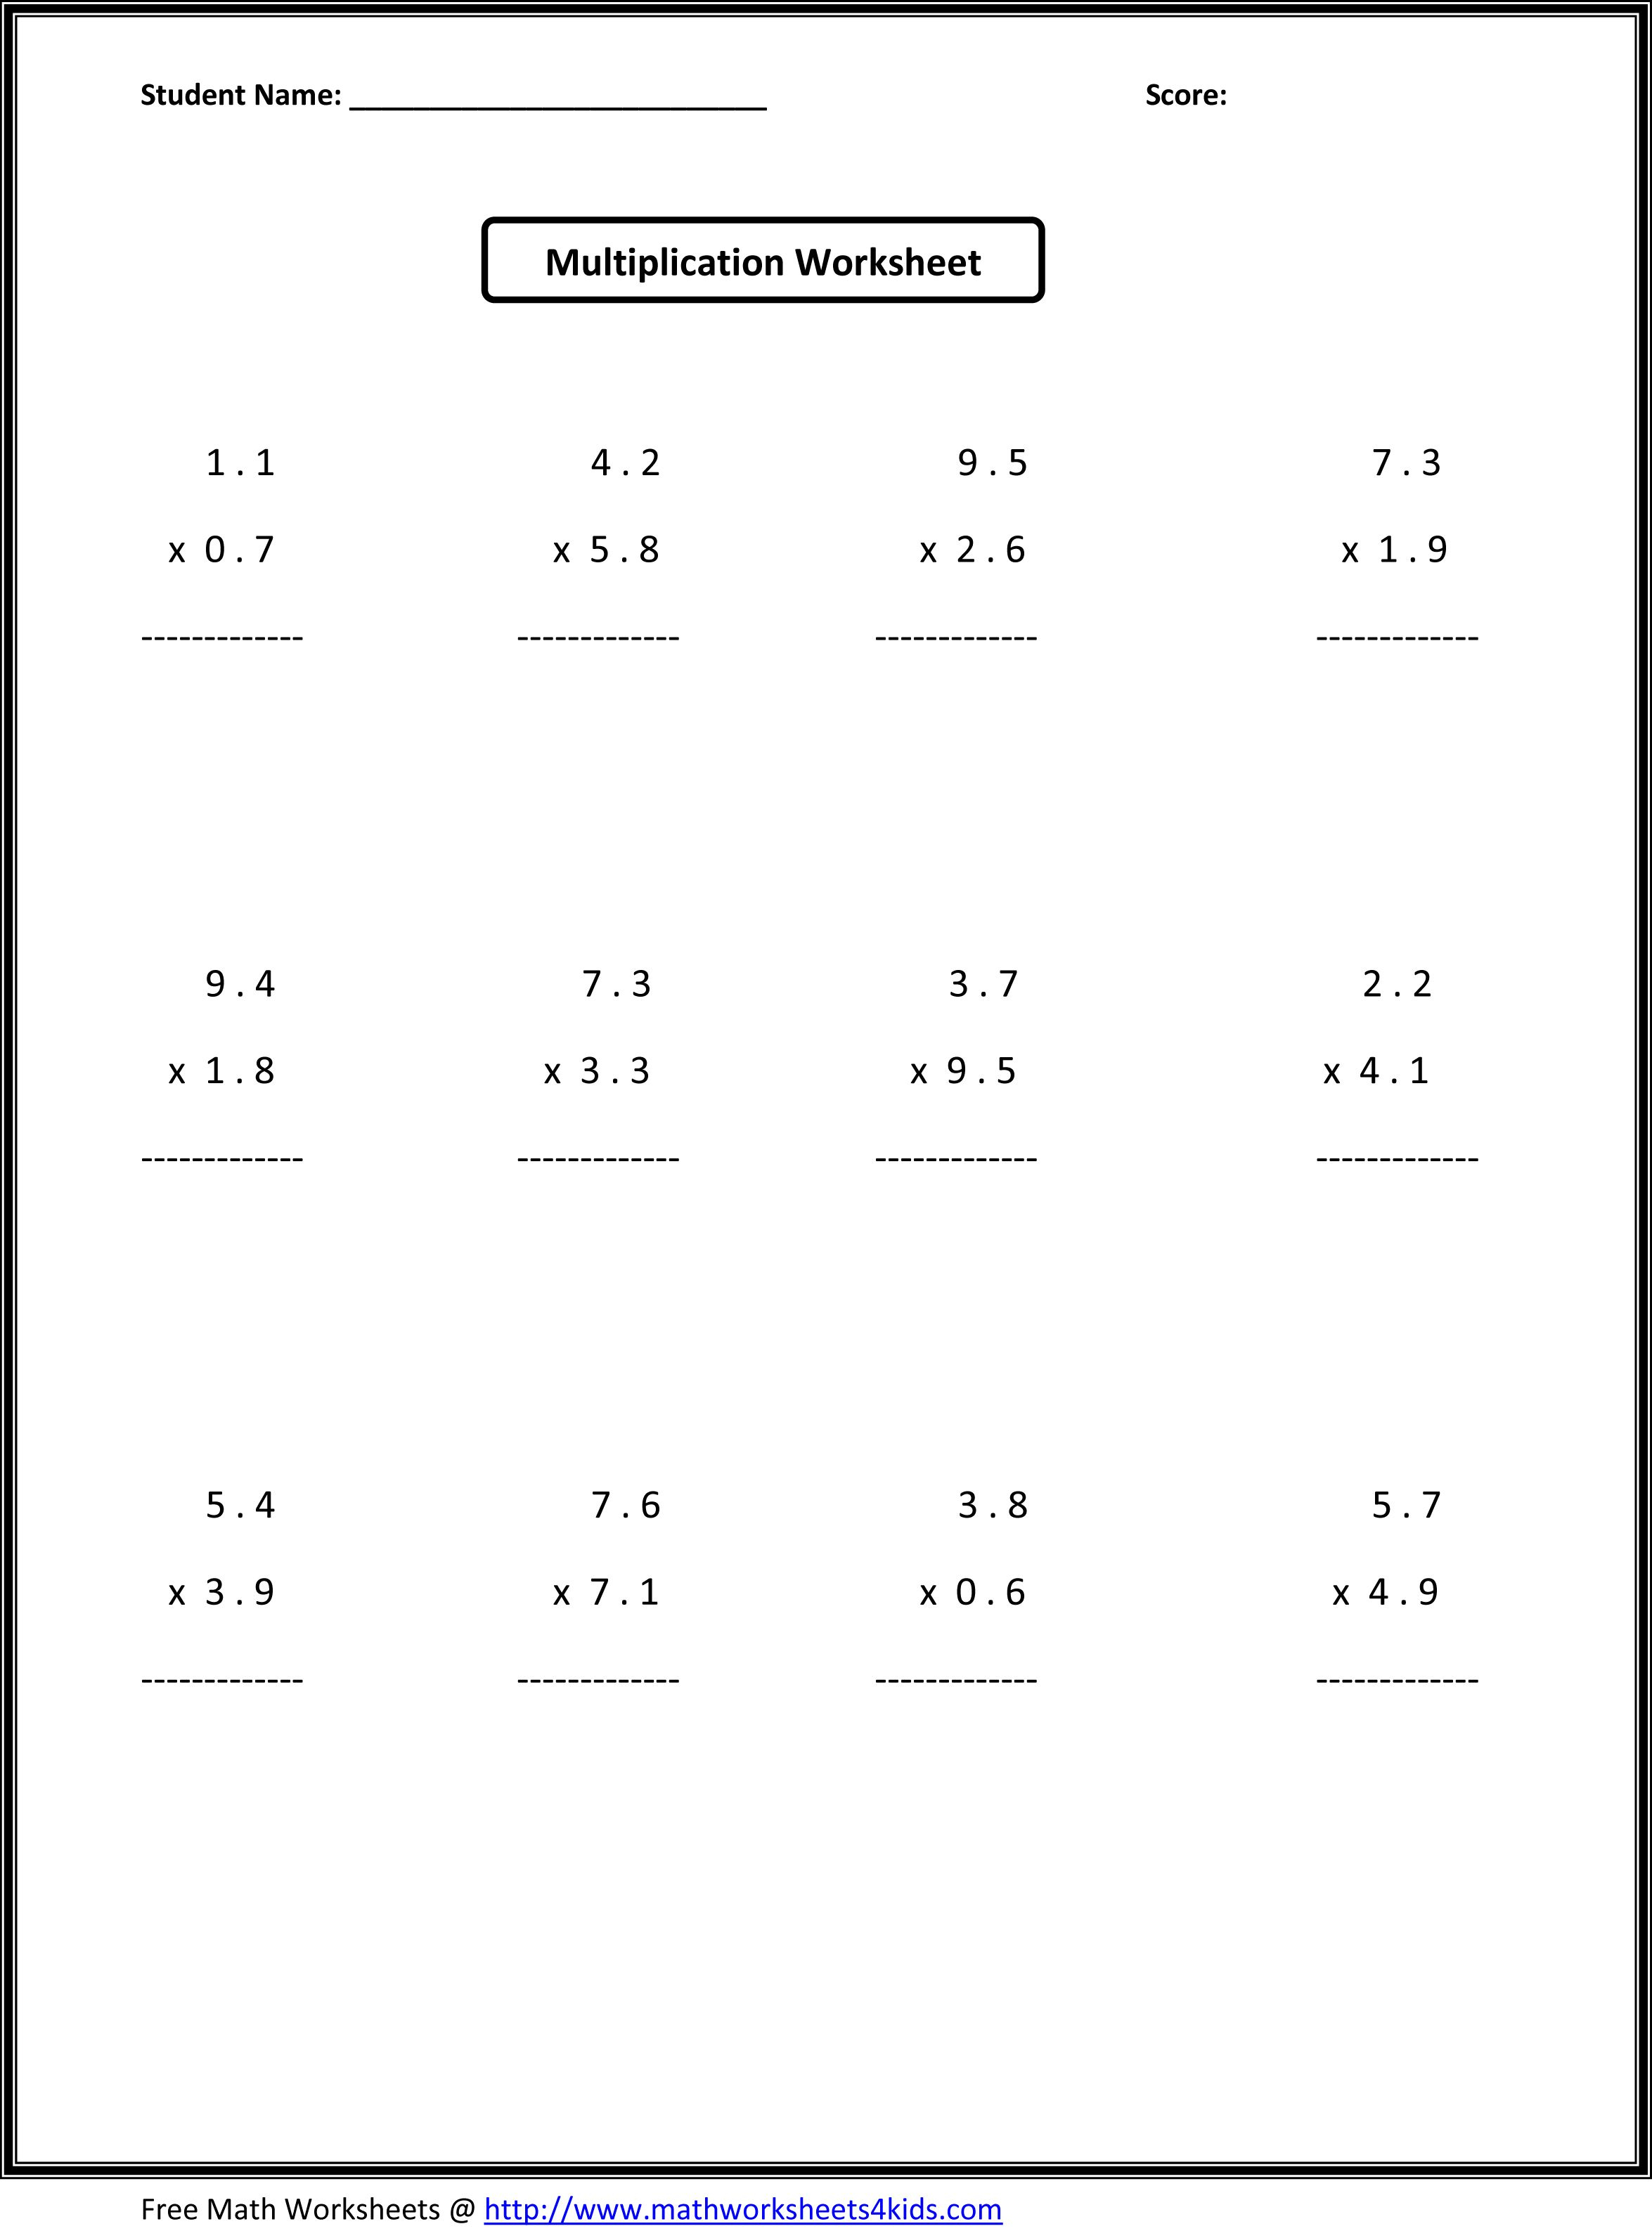 7Th Grade Math Worksheets | Value Worksheets Absolute Value | 7Th Math Worksheets Printable